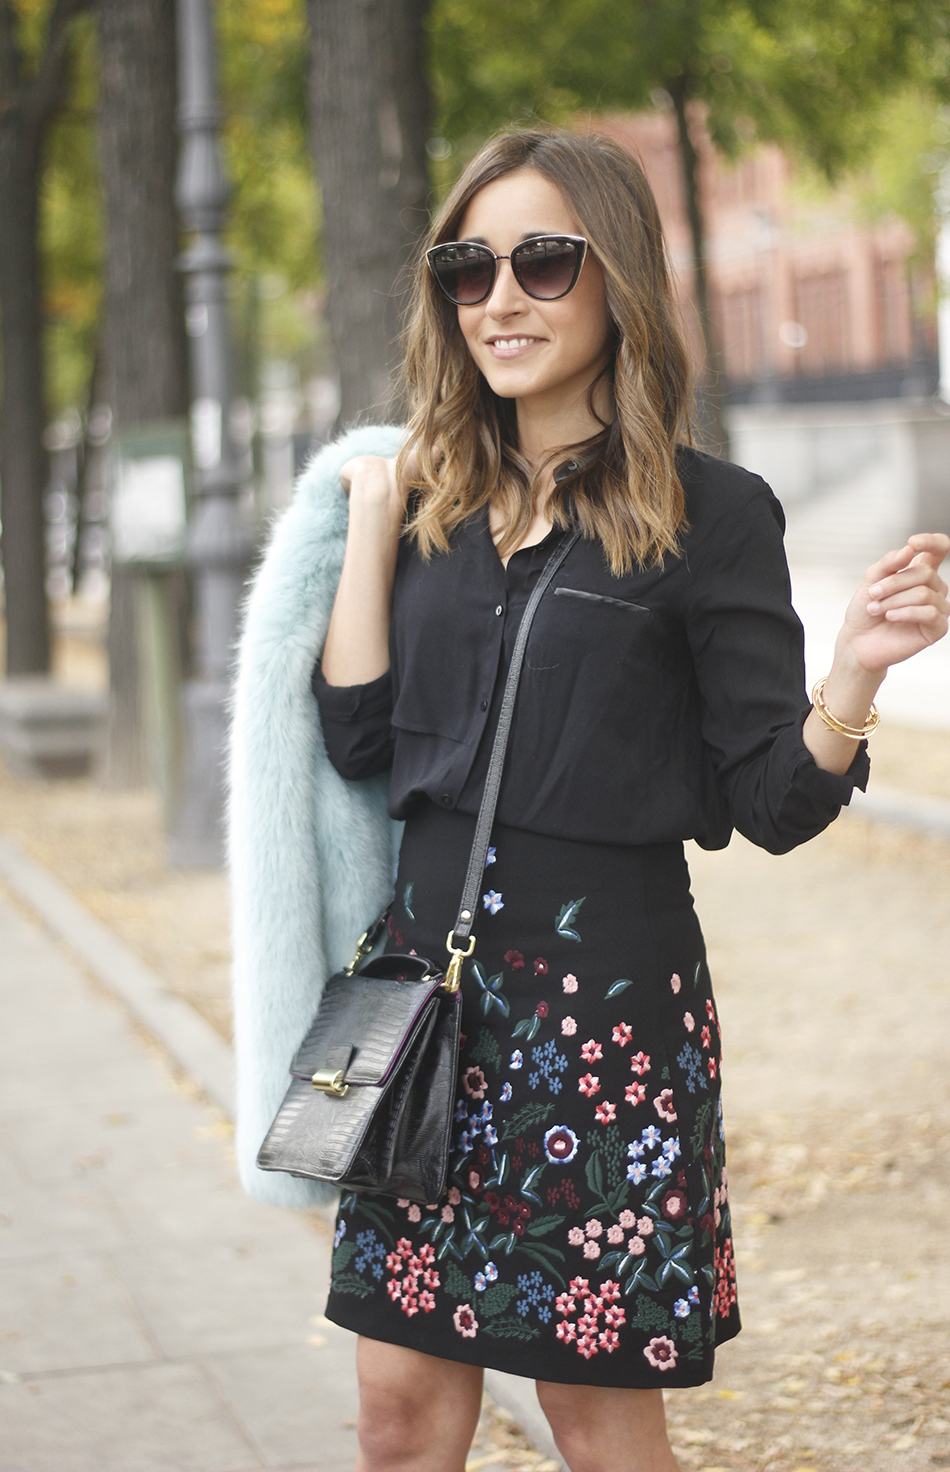 black skirt with flowers outfit12